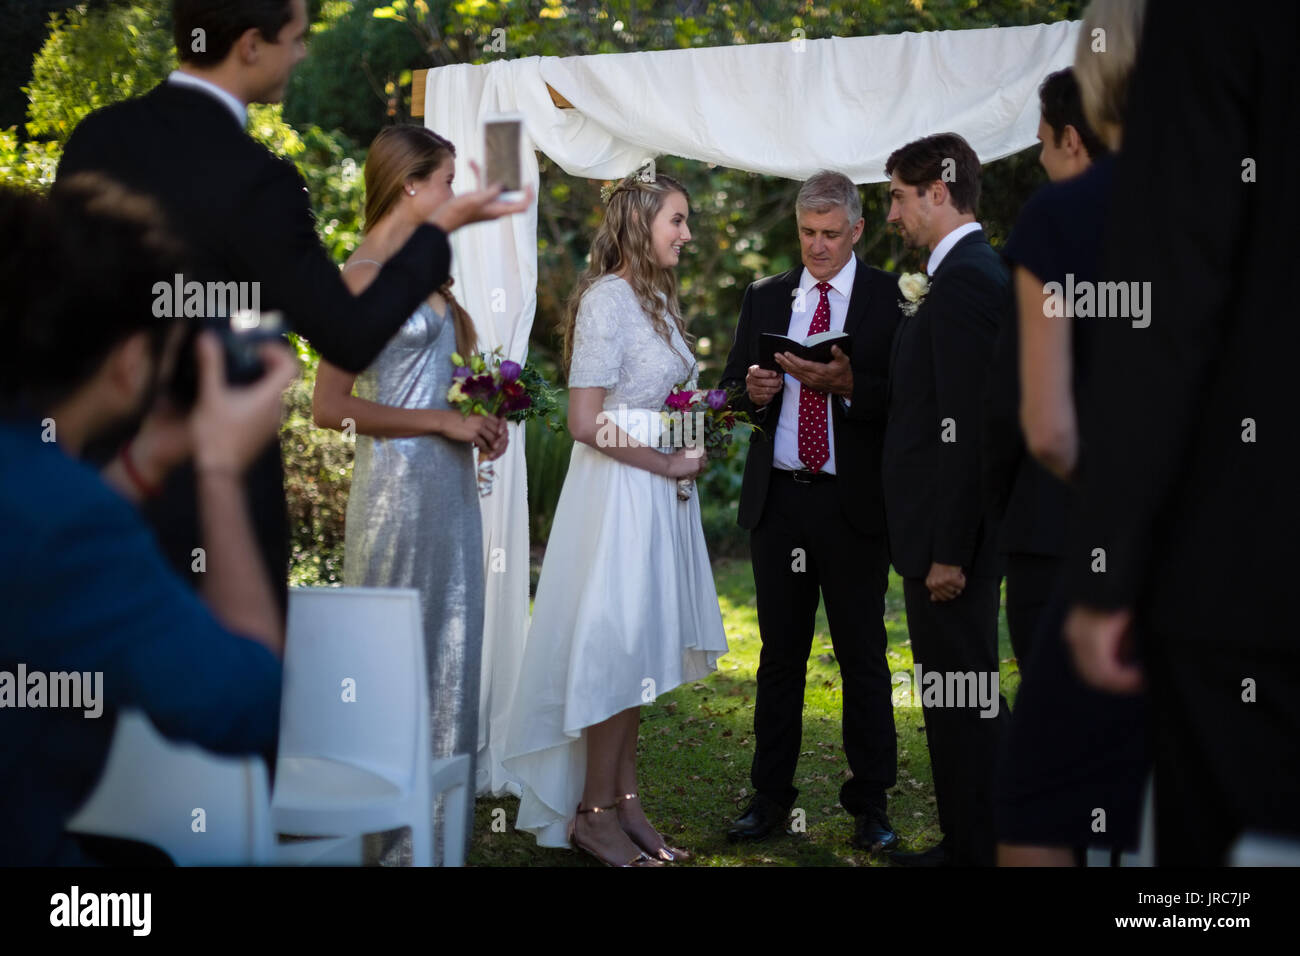 Pay preacher for wedding